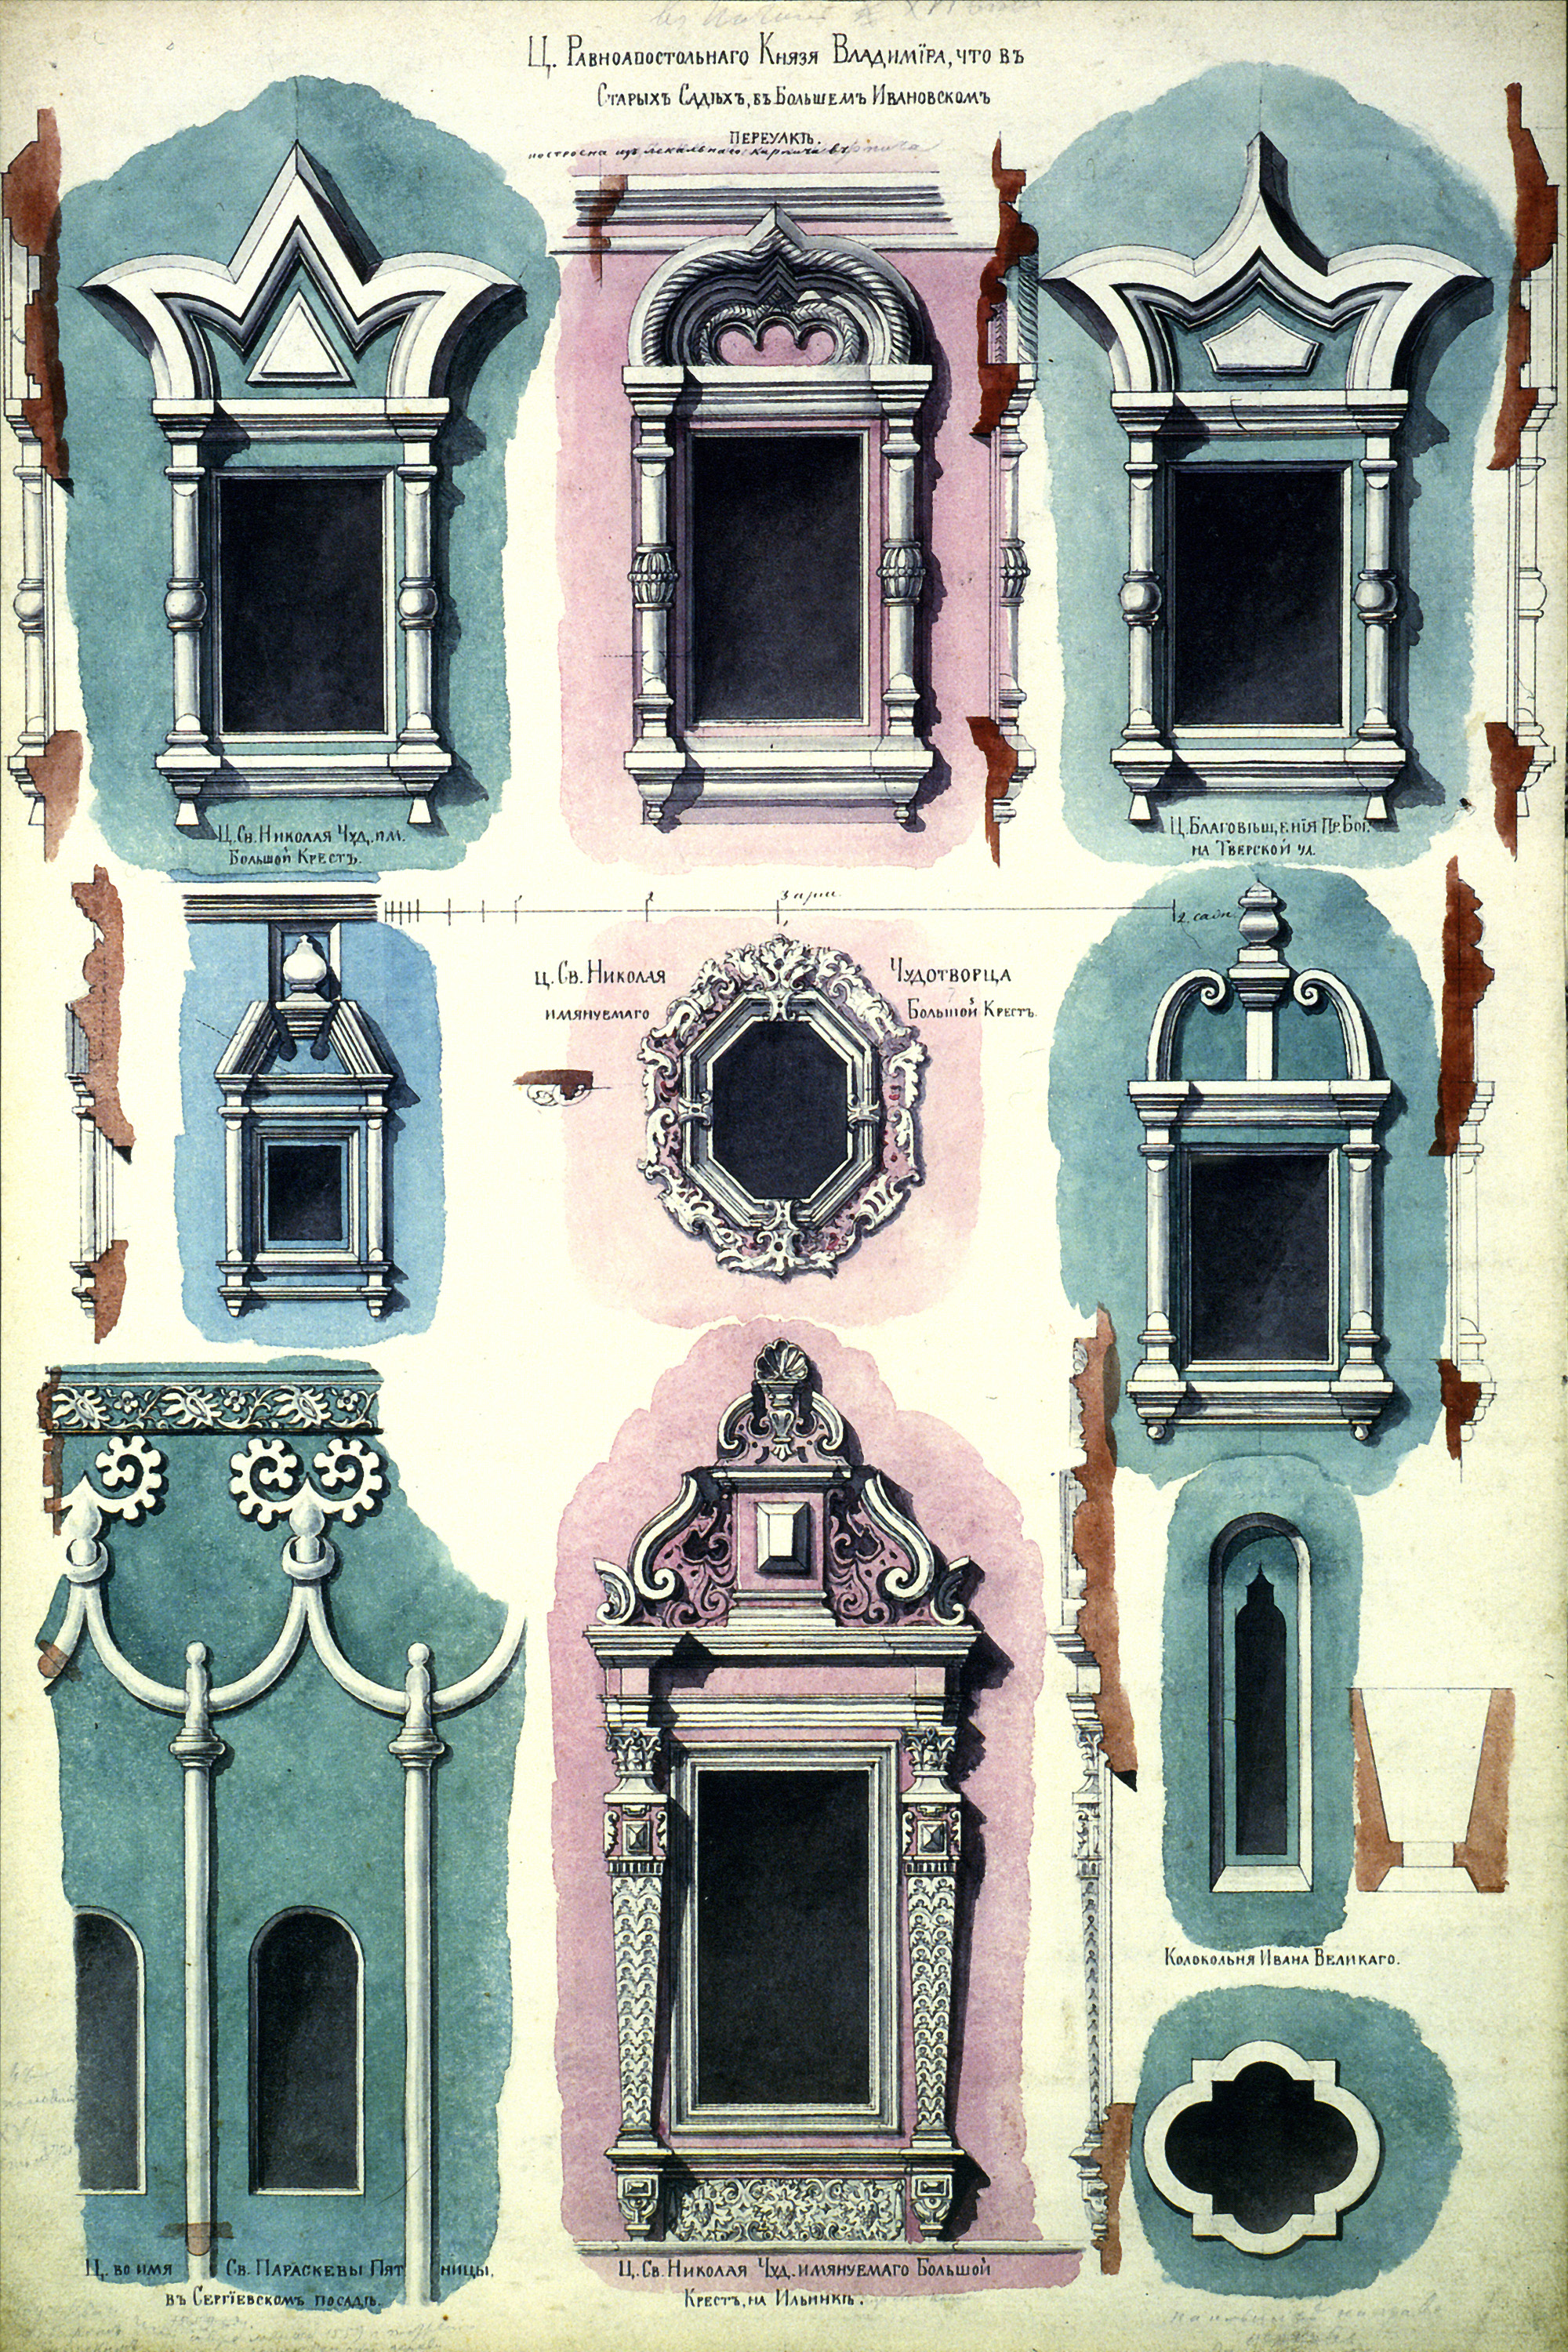 Muscovite_Window_and_Portals_17th_century_02